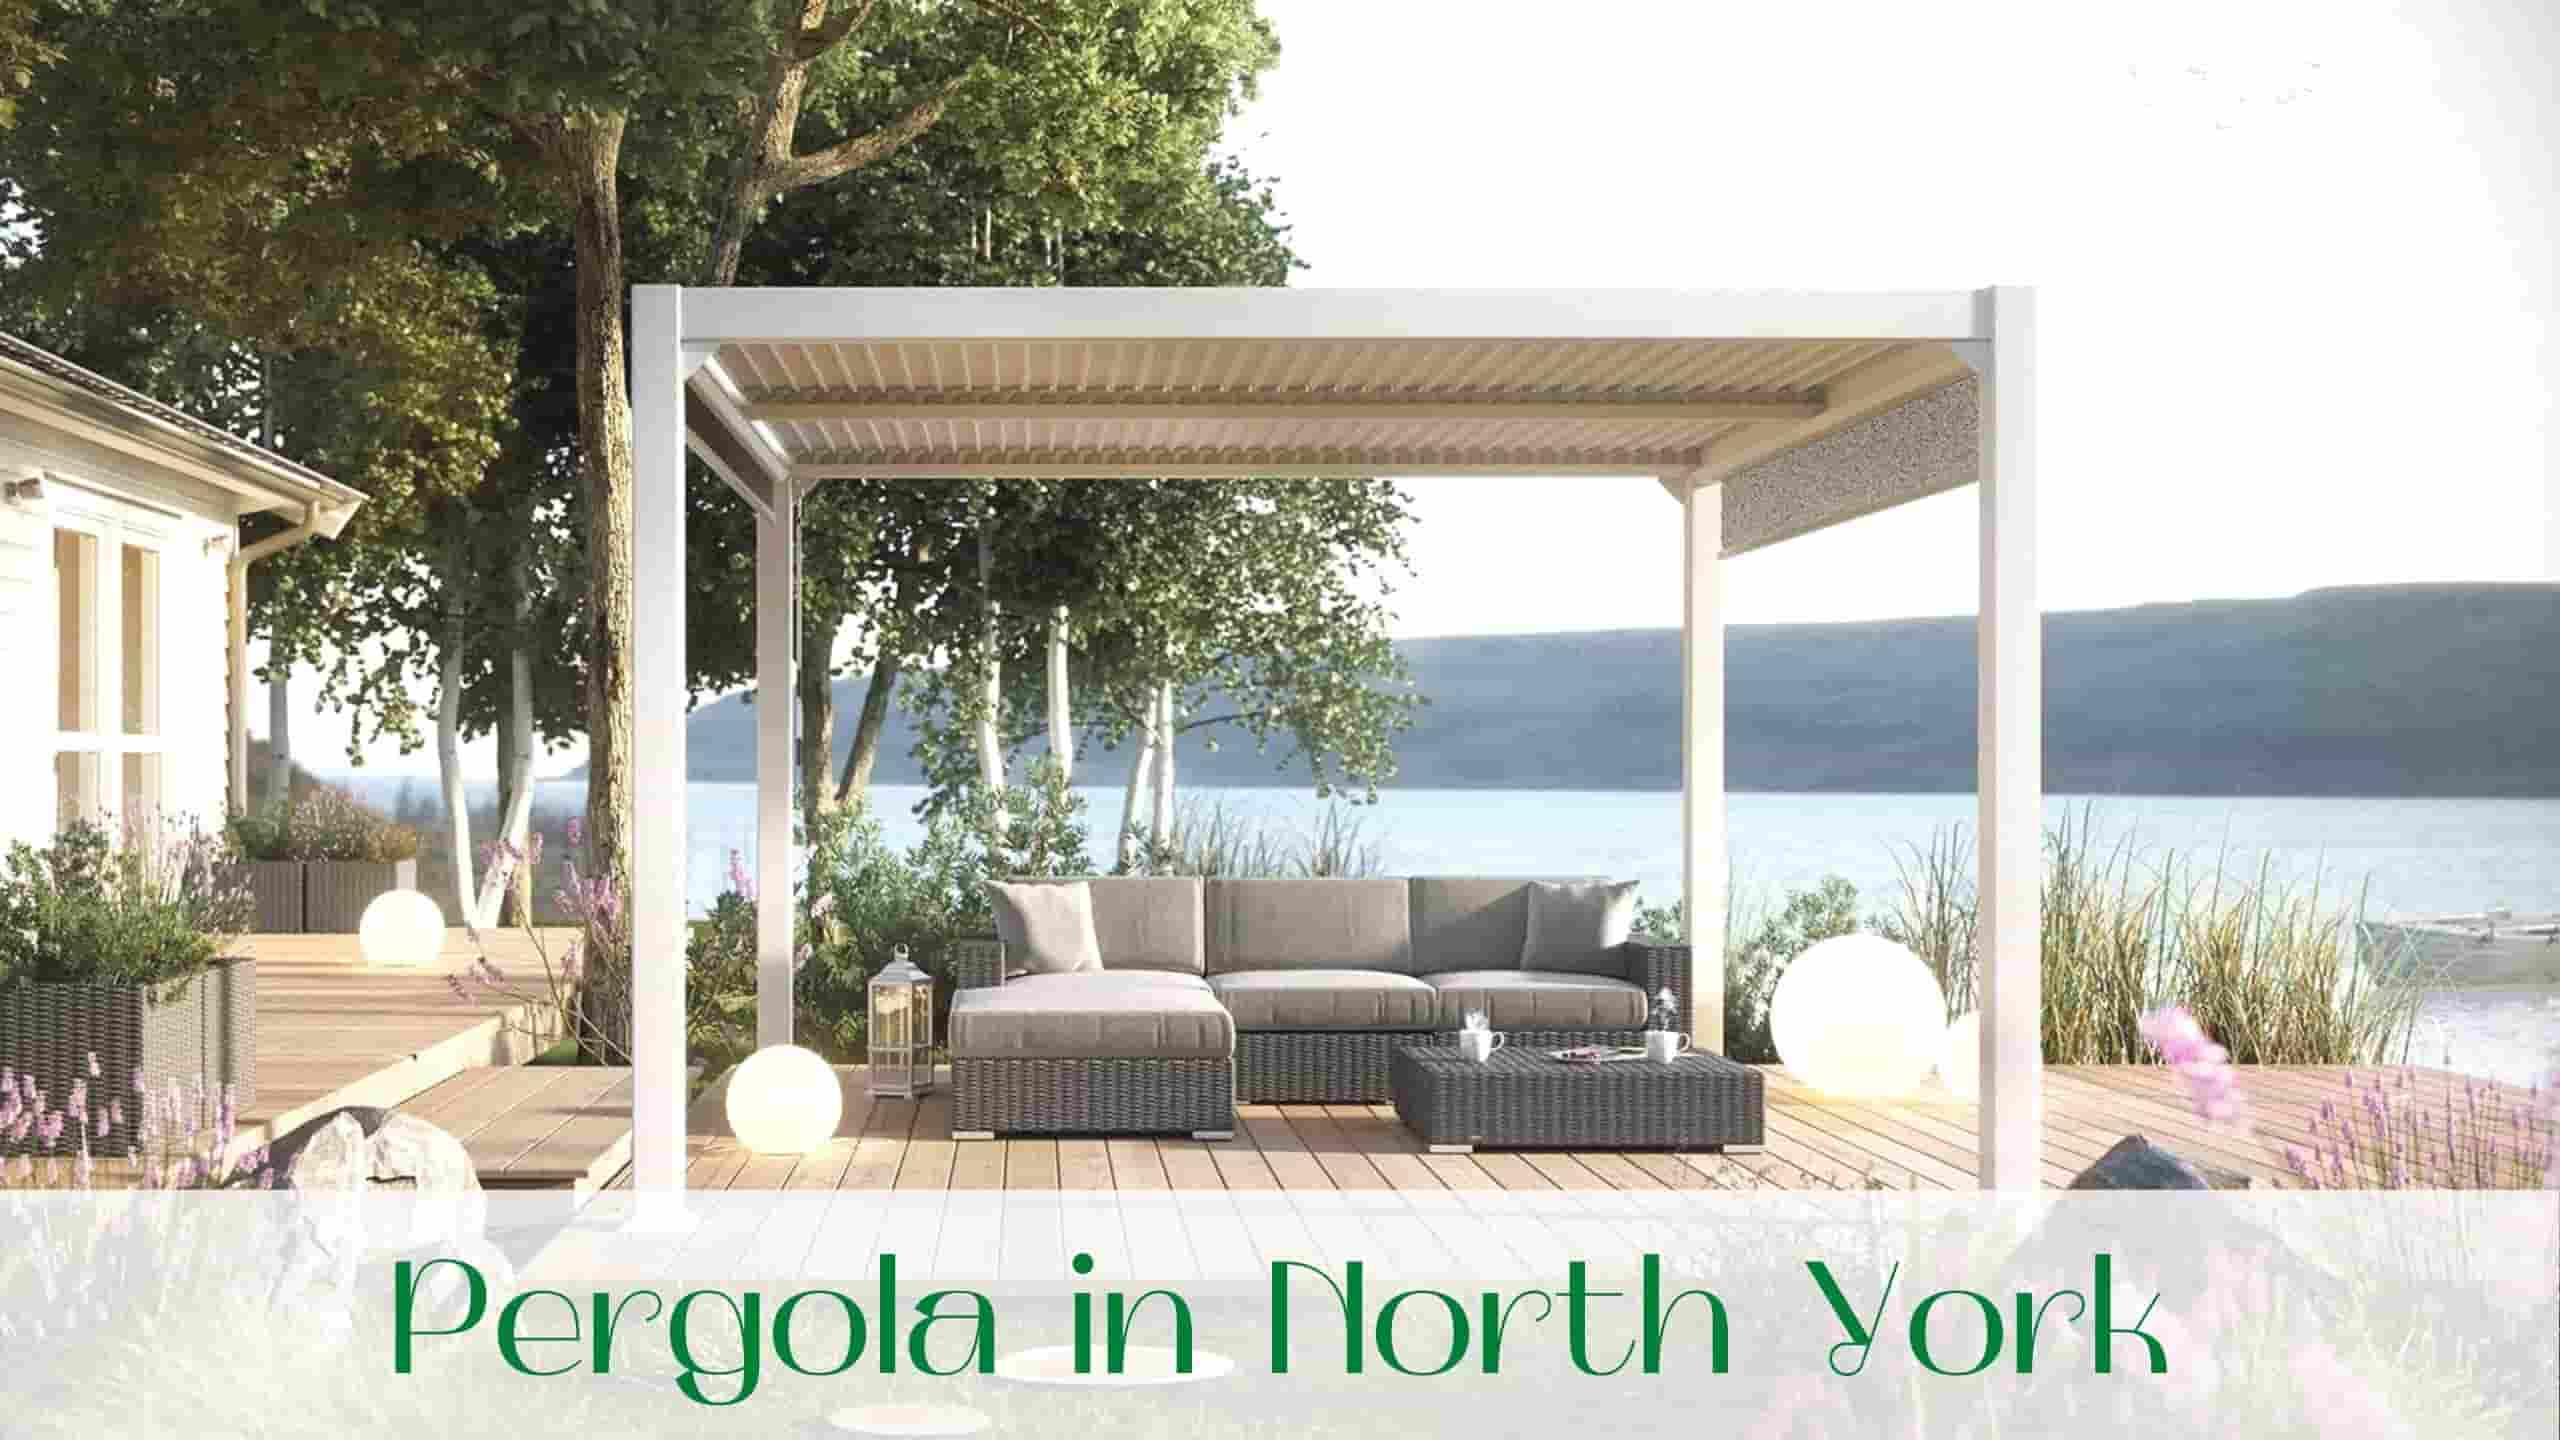 image-Pergola-in-North-York